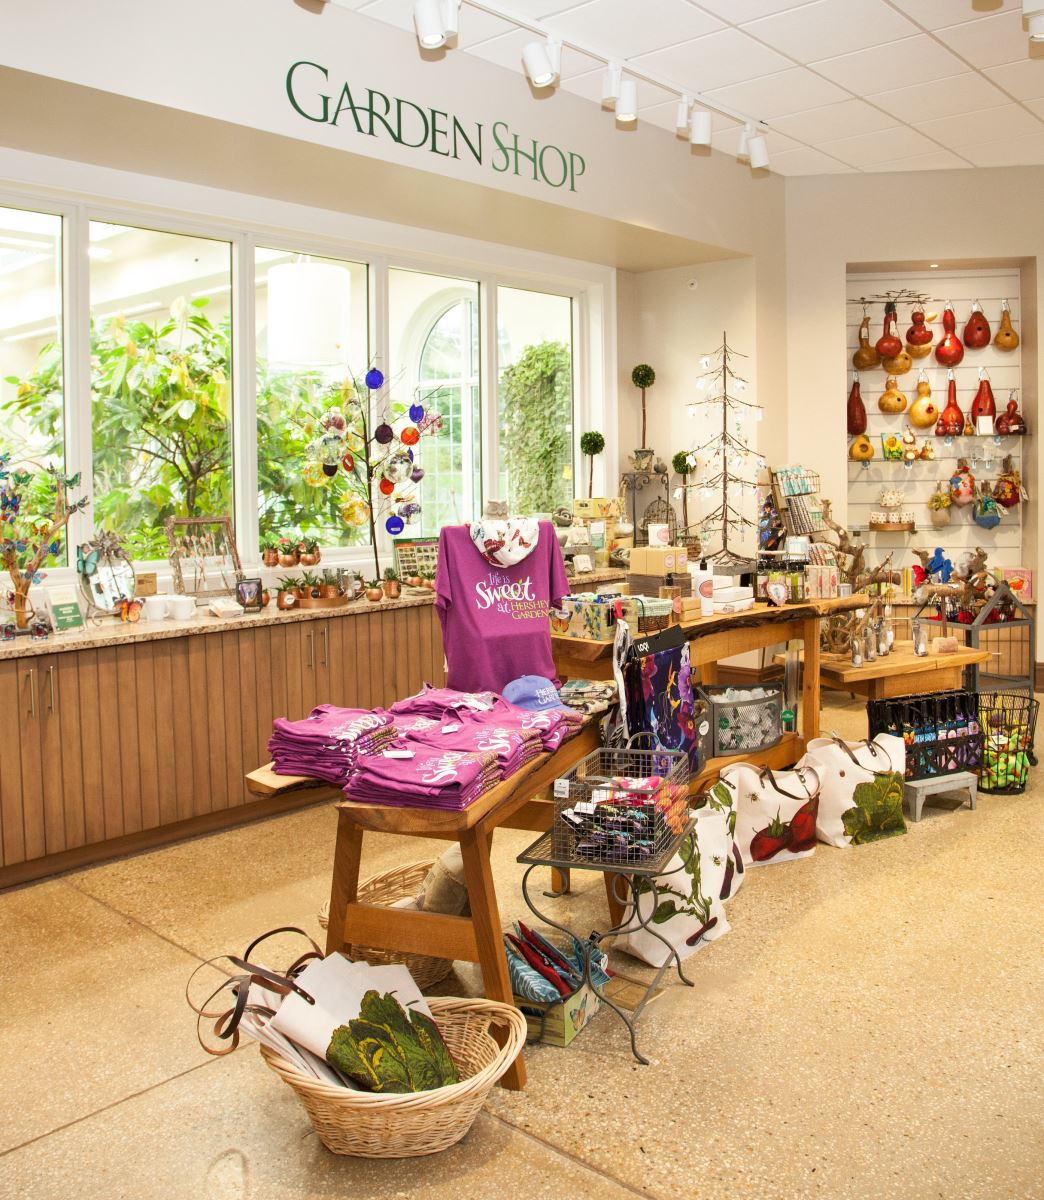 The Garden Shop Features Distinctive Items Perfect For Gift Giving And Home Decorating Dont Forget Kids Theyll Love Great Assortment Of